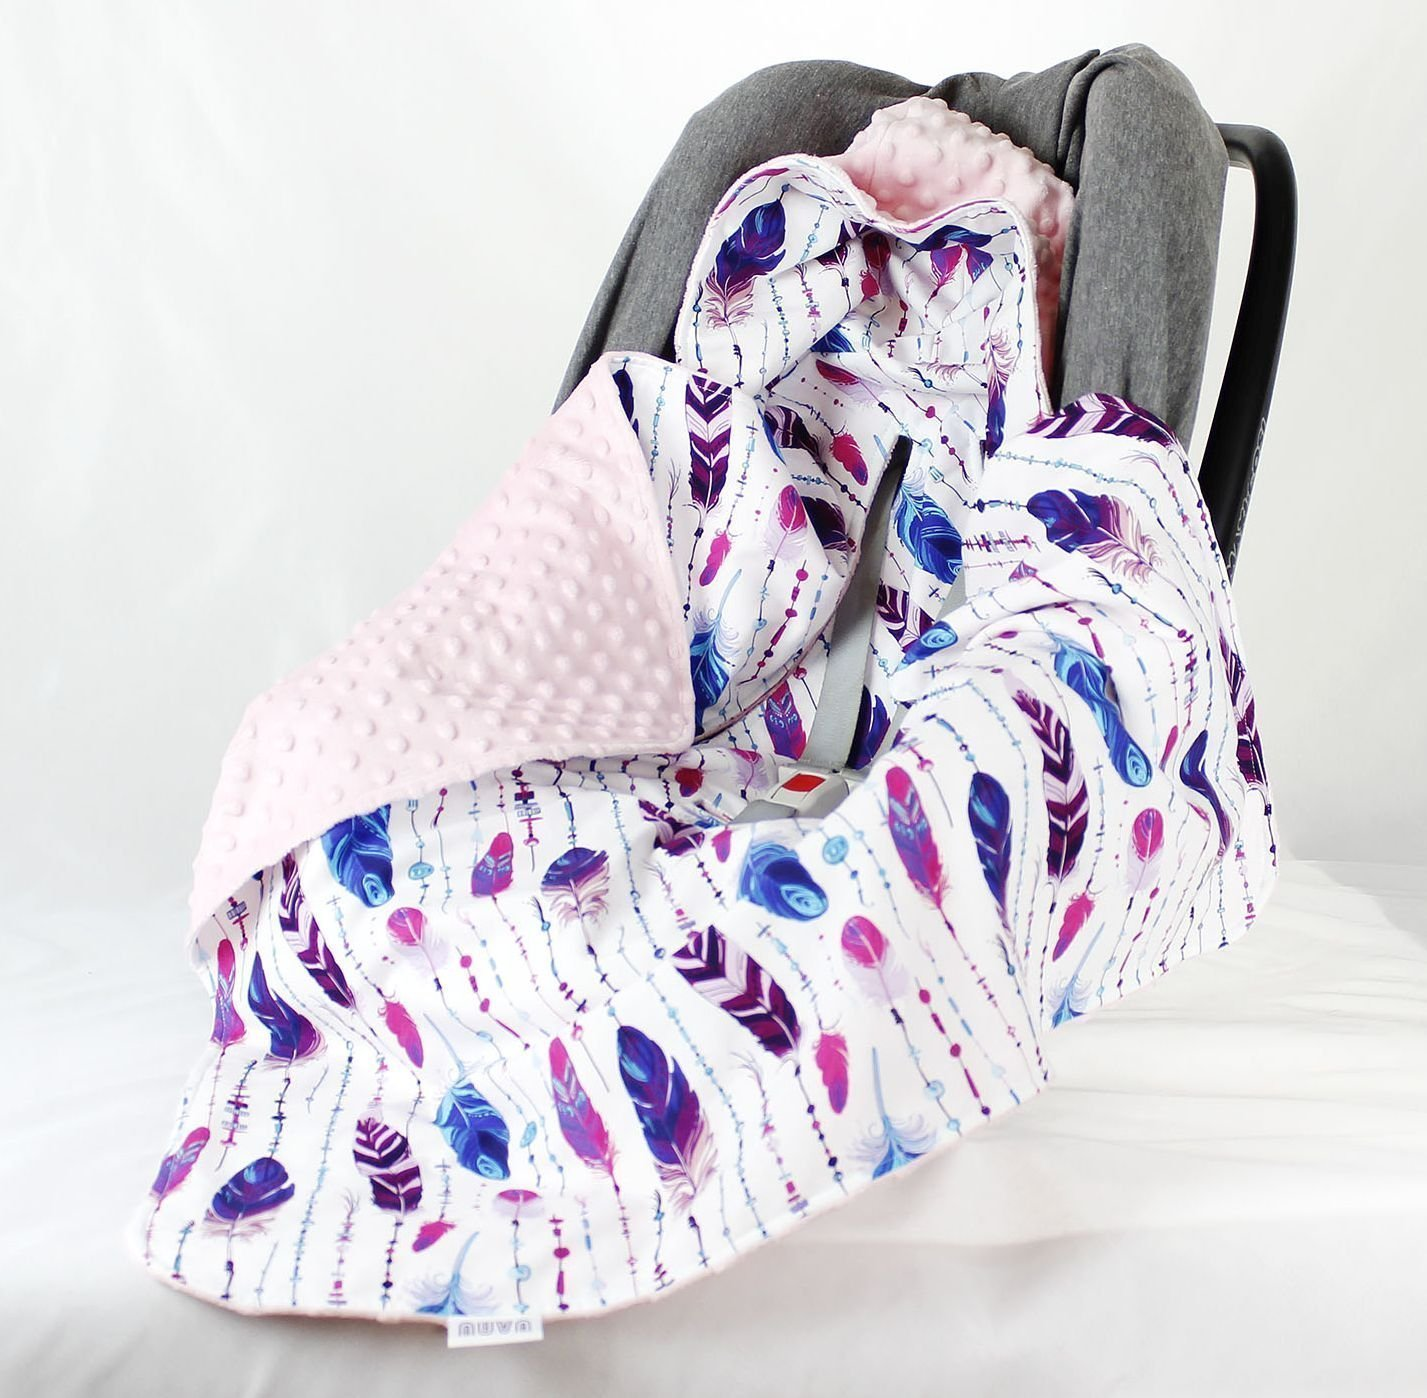 Feather Girl Car Seat Blanket, Hooded Car Seat Blanket, Swaddle Travel Blanket